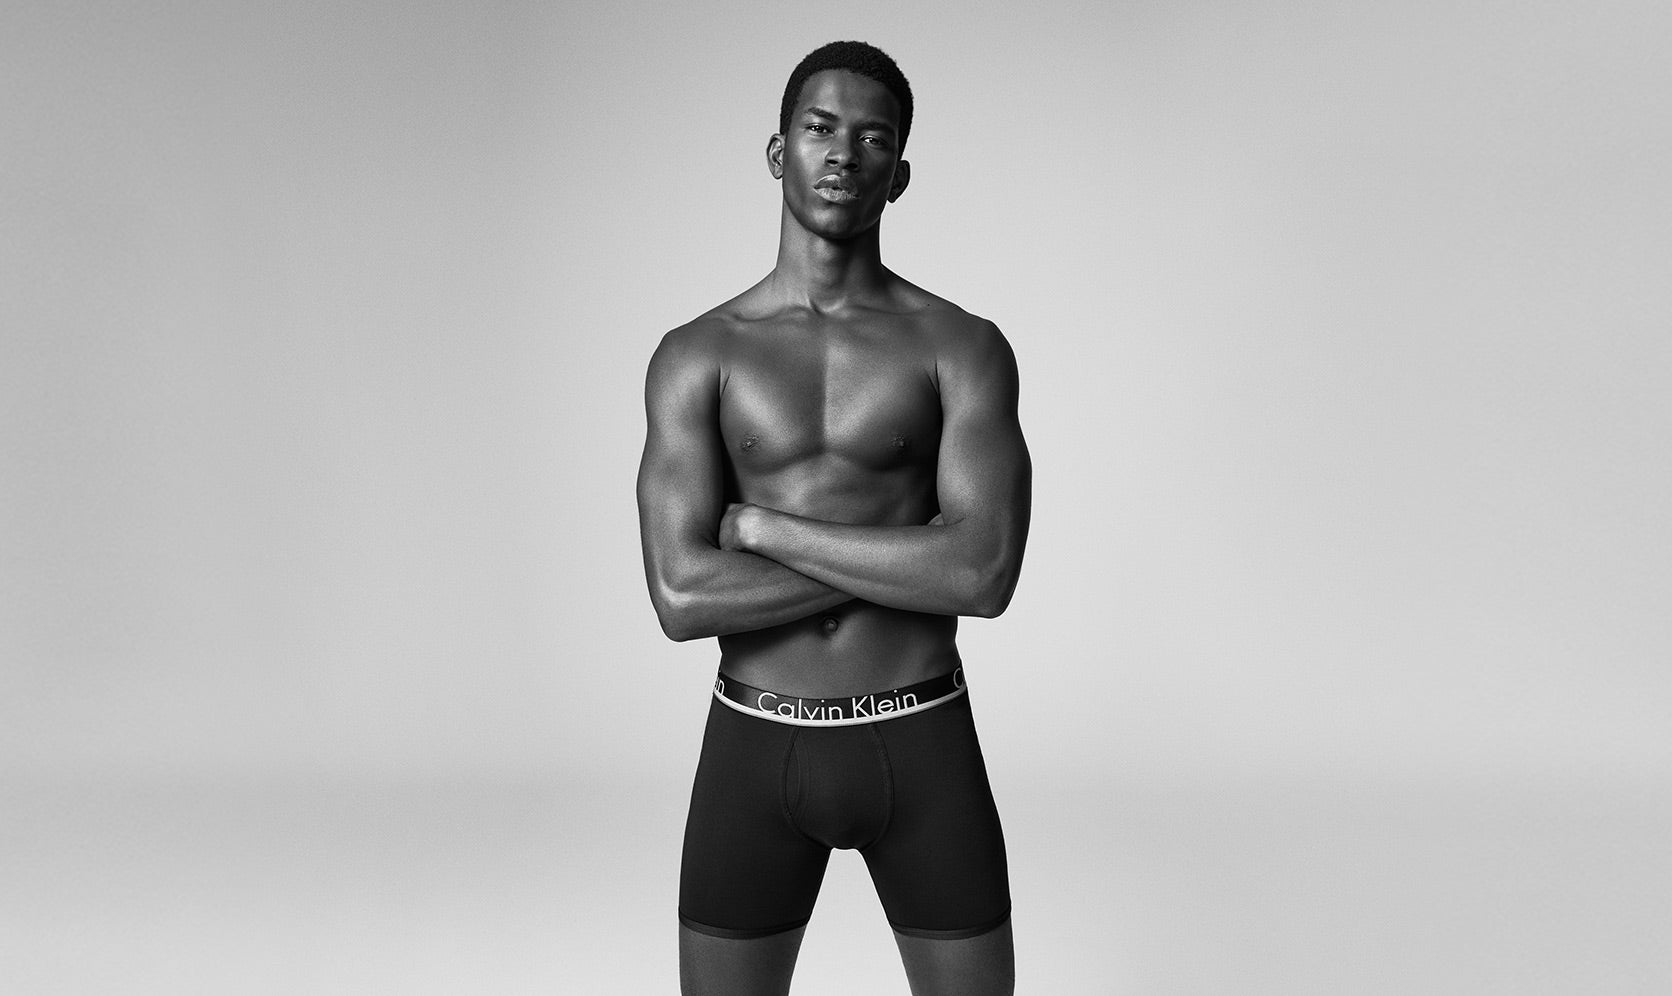 Introducing the Fall'17 Men's Underwear Campaign